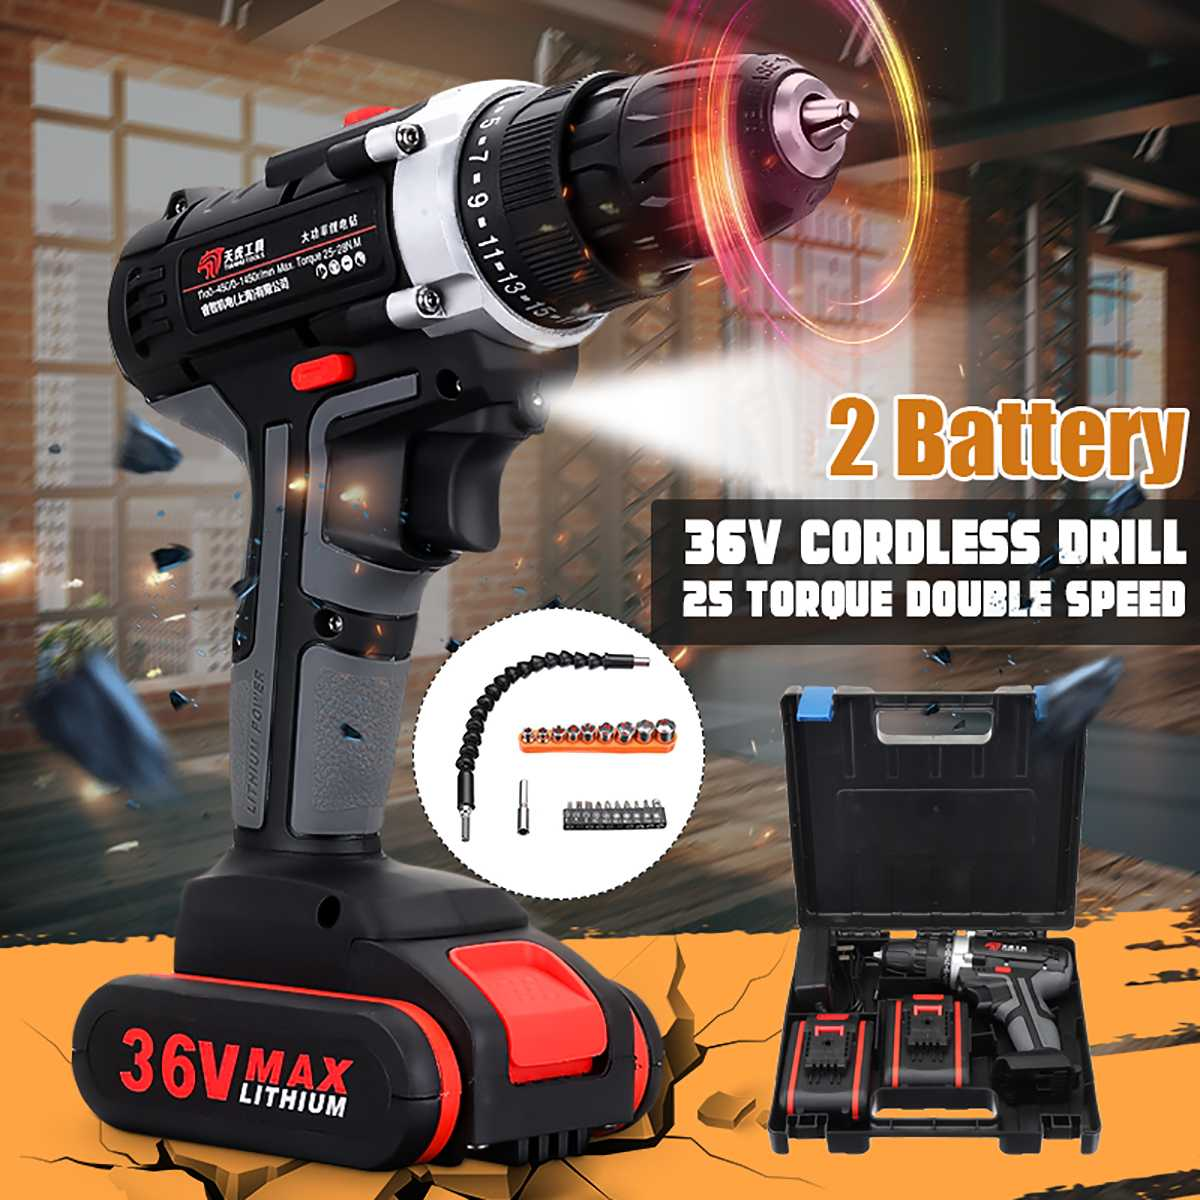 36V Electric Mini Cordless Drill Wireless DC Lithium-Ion Batter 2-Speed Electric Screwdriver Household Electric Drill Handheld